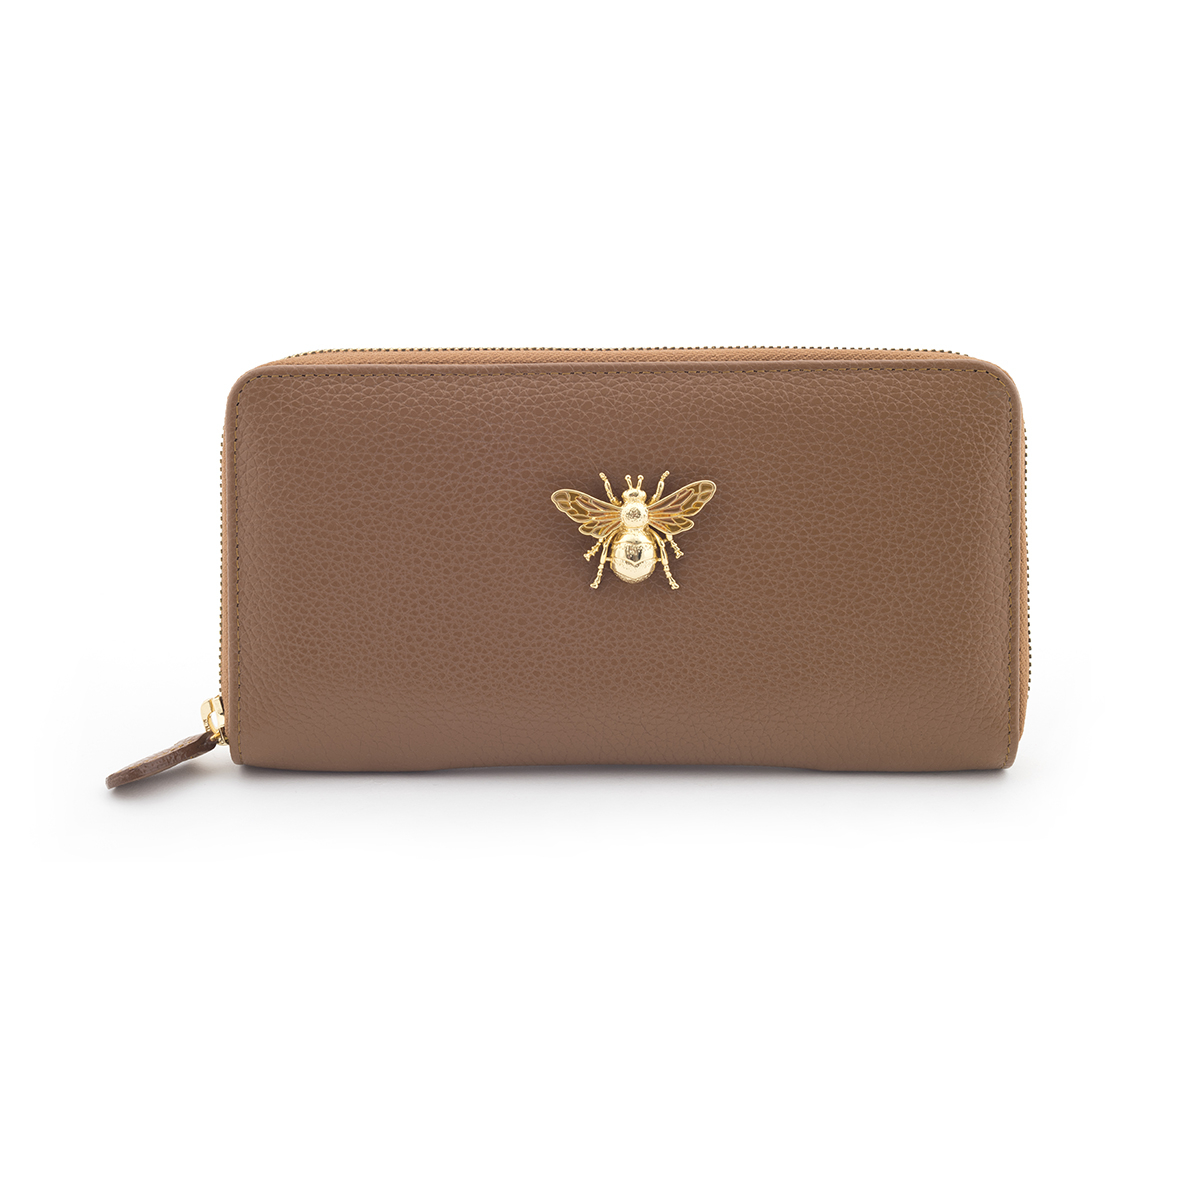 Queen Bee Leather Purse - Tan